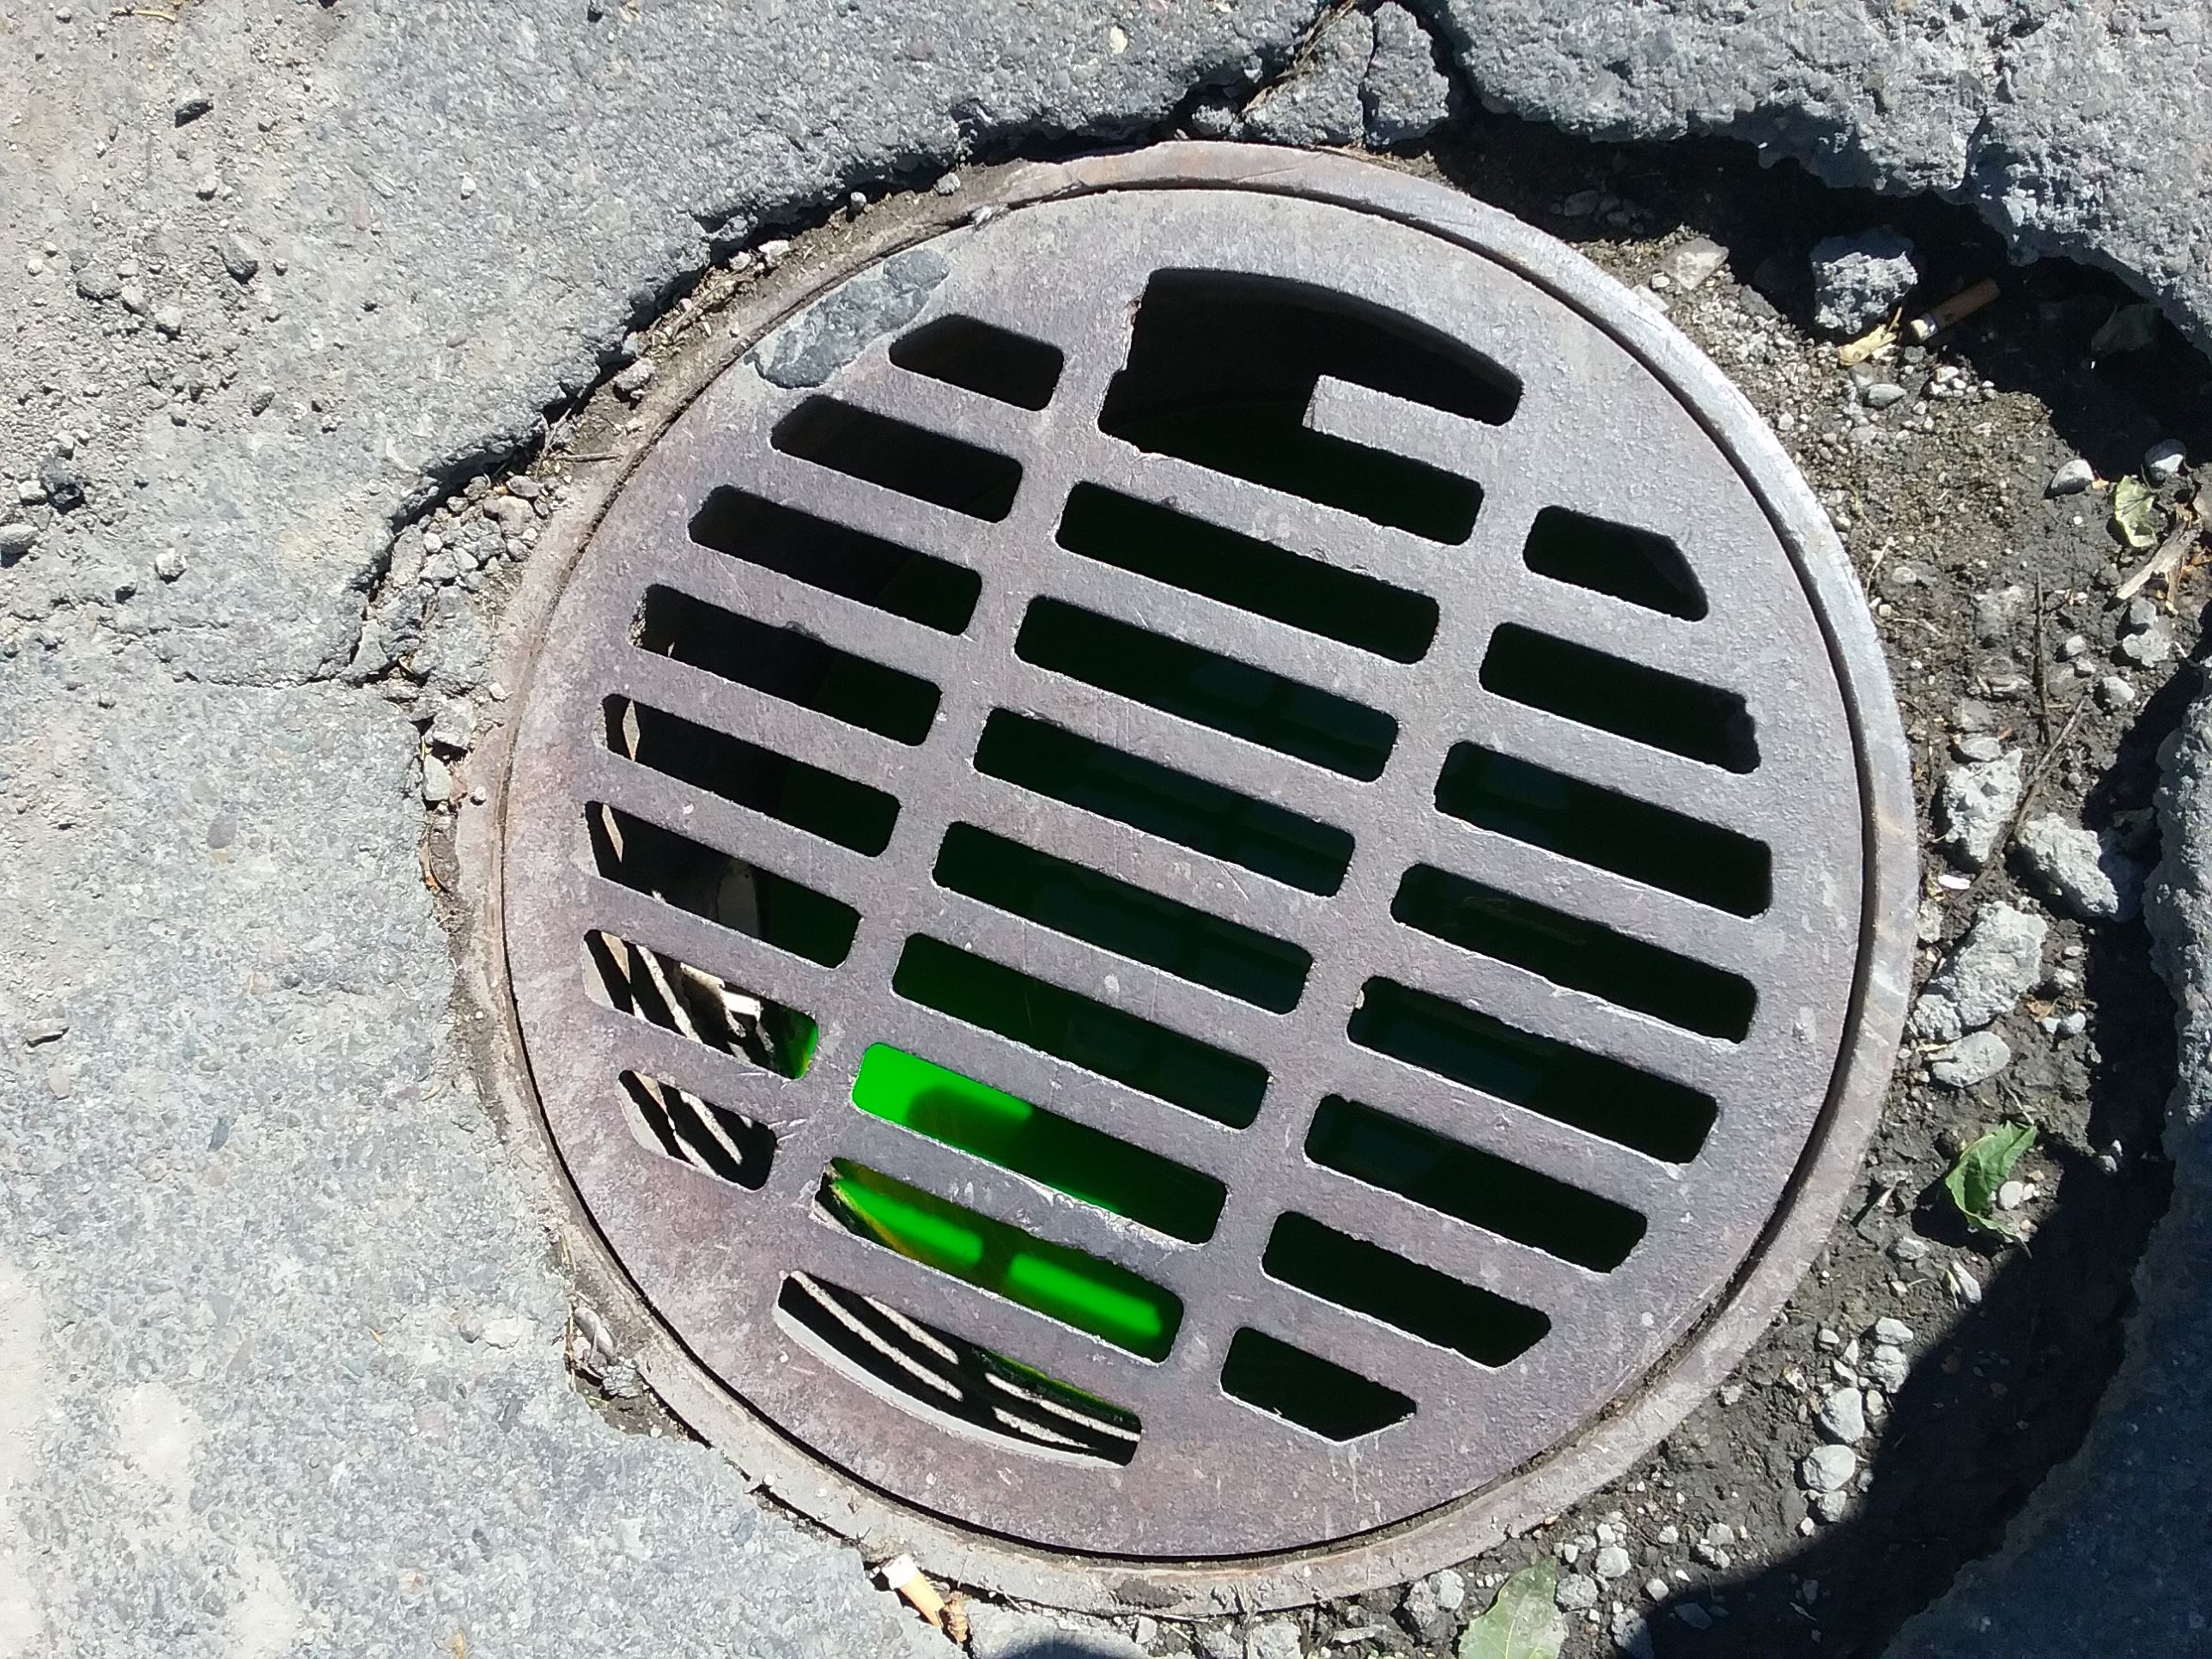 Green dye test in storm manhole